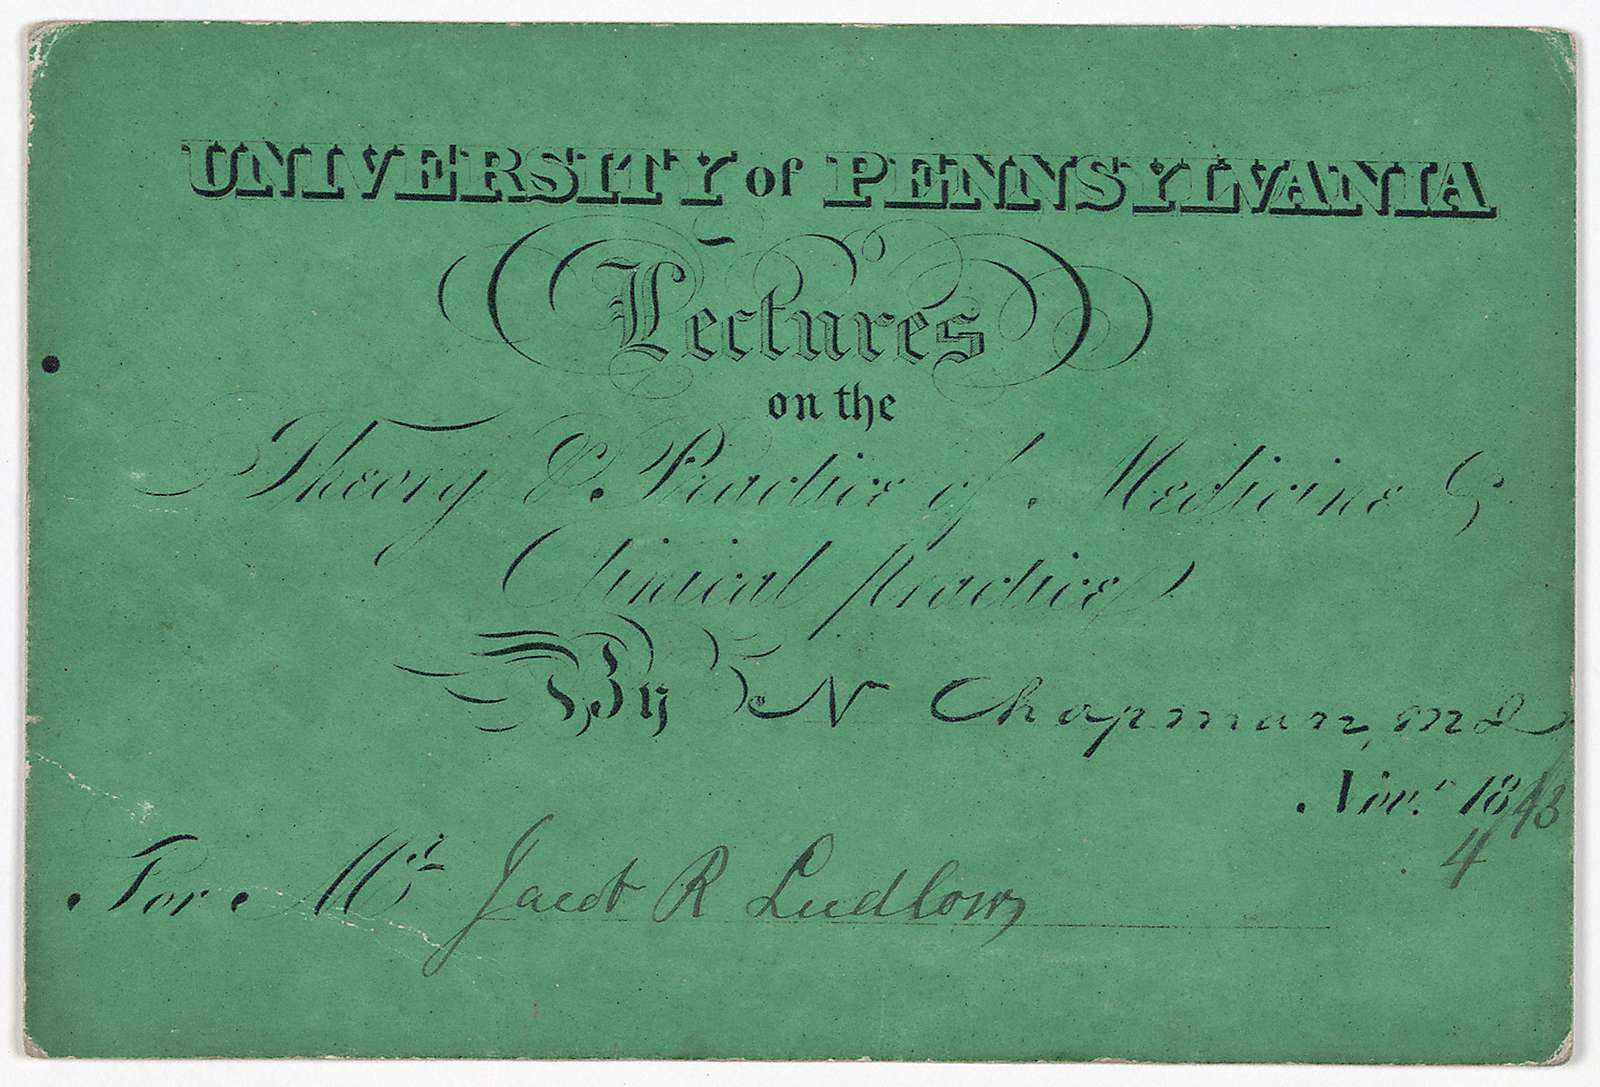 University of Pennsylvania. Lectures on the theory & practice of medicine by N. Chapman. M.D. Nov. 4, 1848. For Mr. Jacob R. Ludlow.